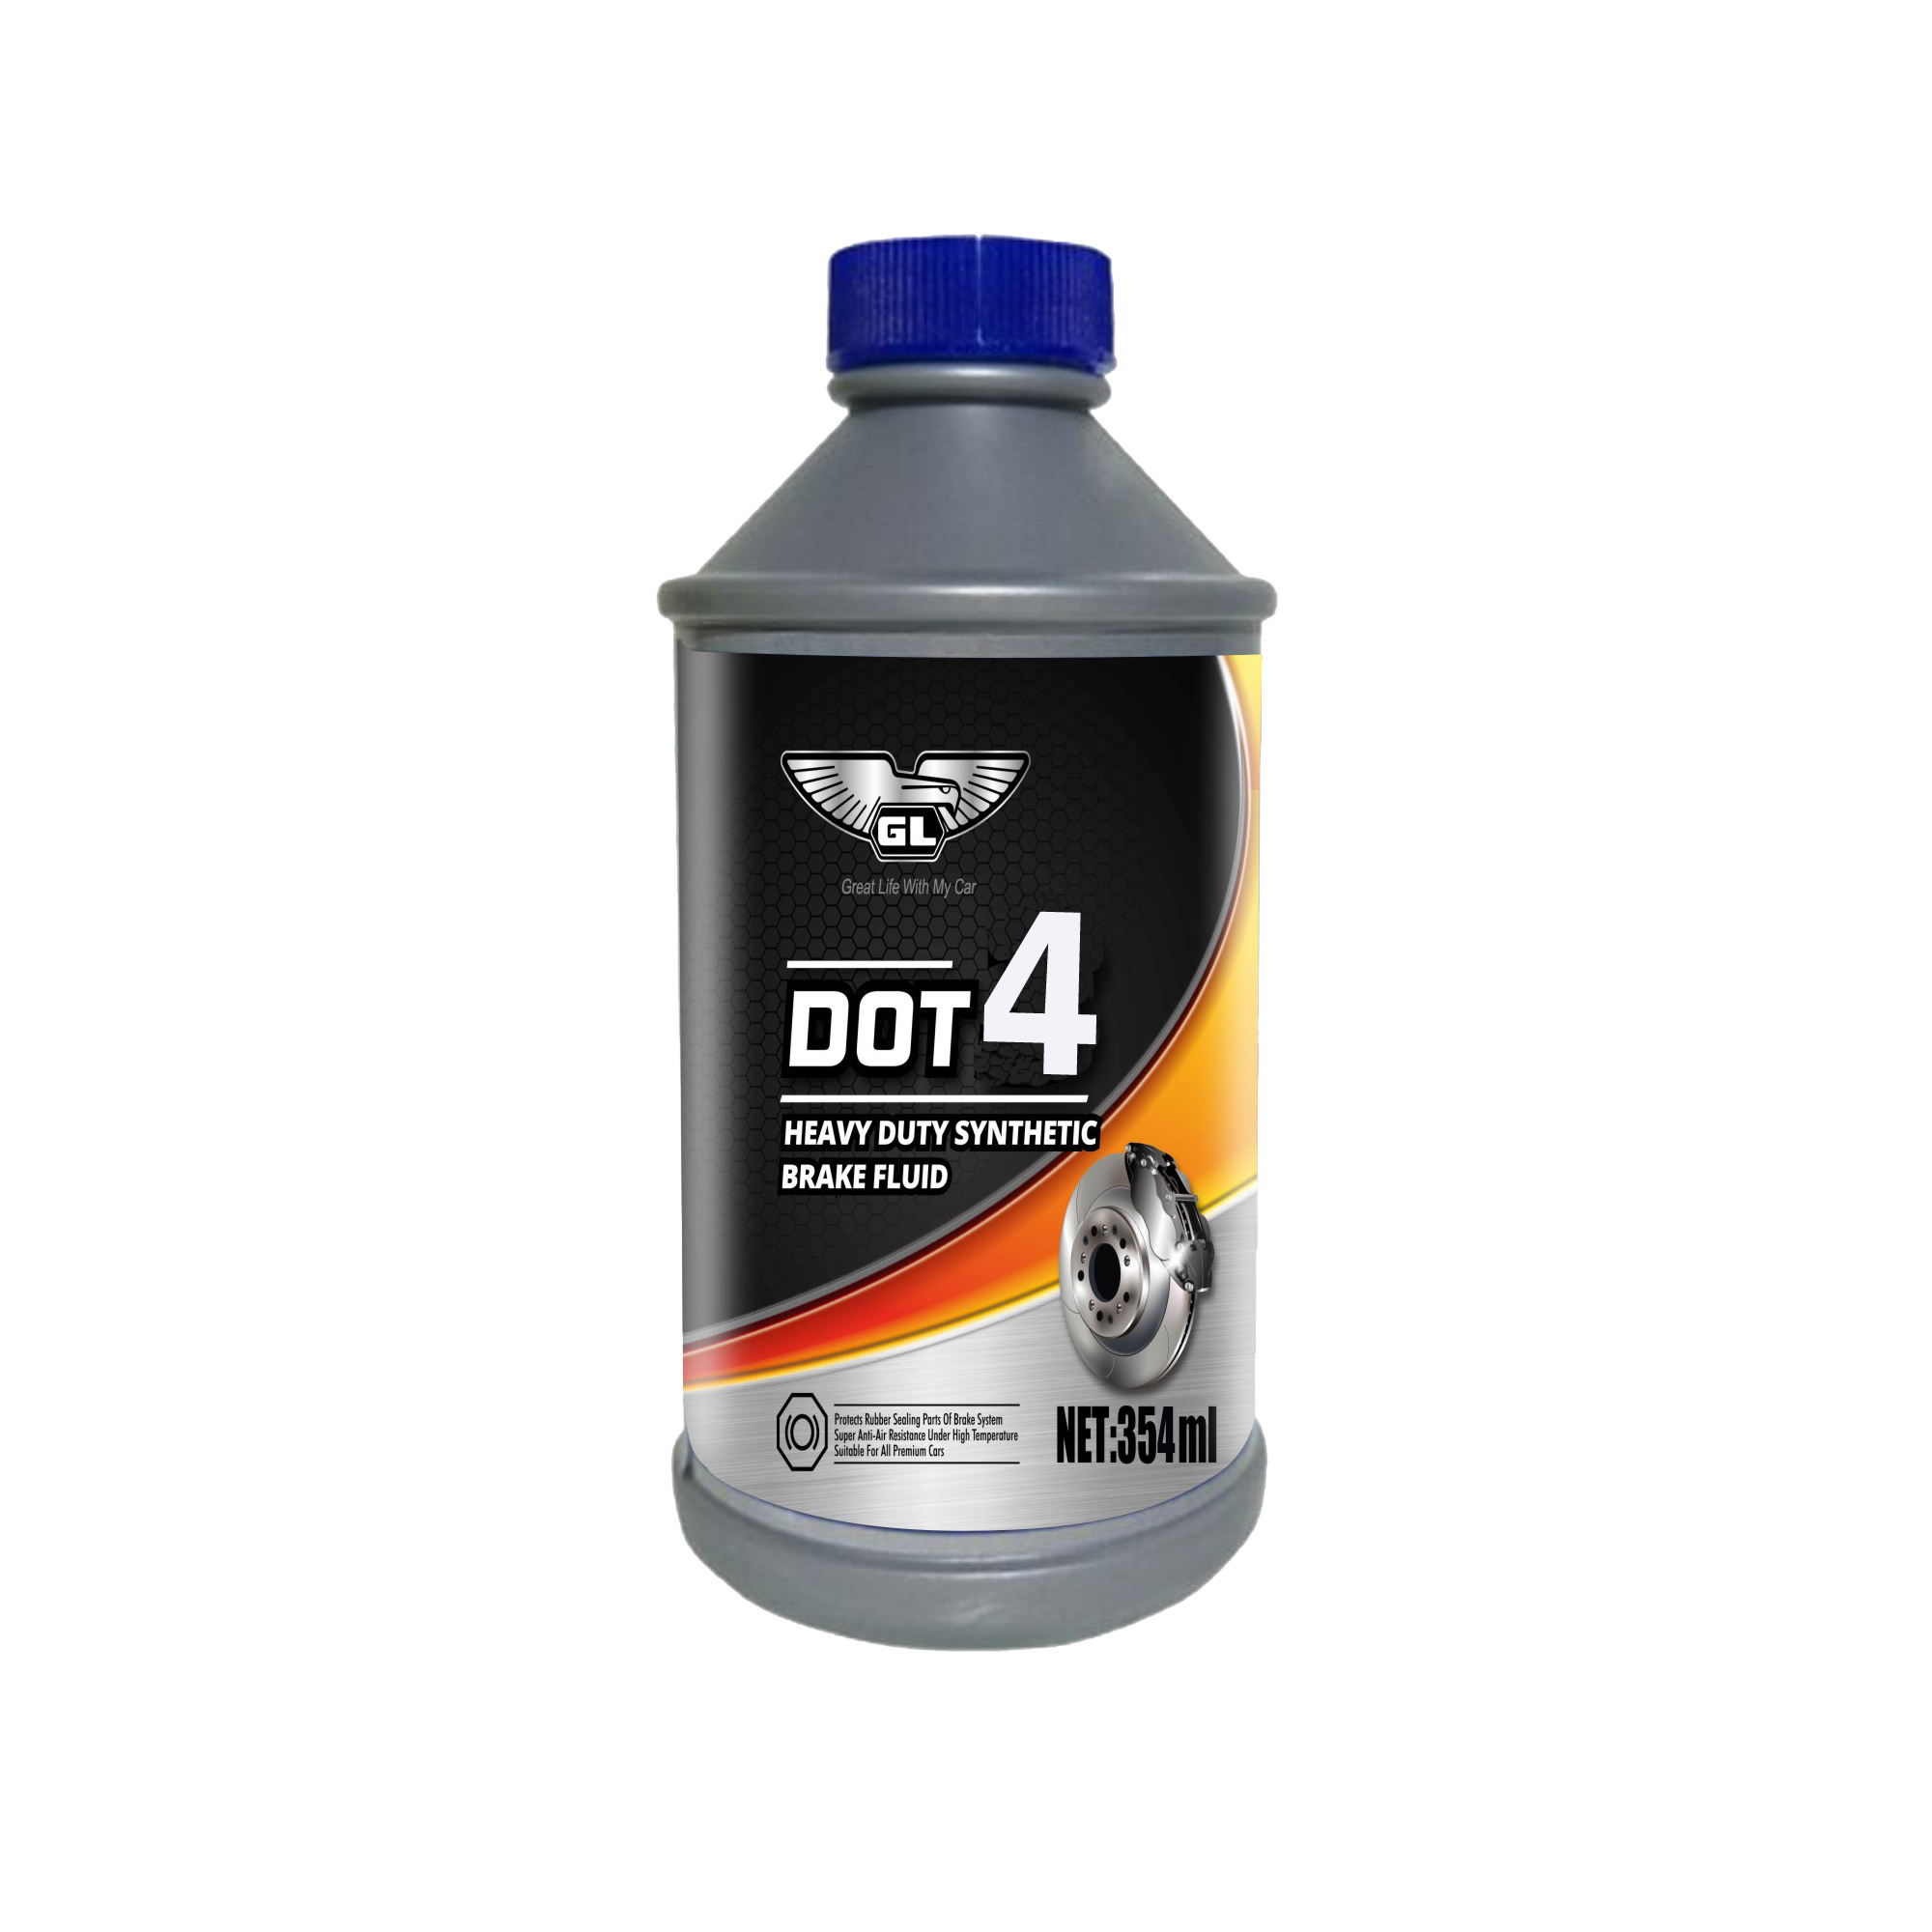 354ml High performance buy dot 4 brake fluid